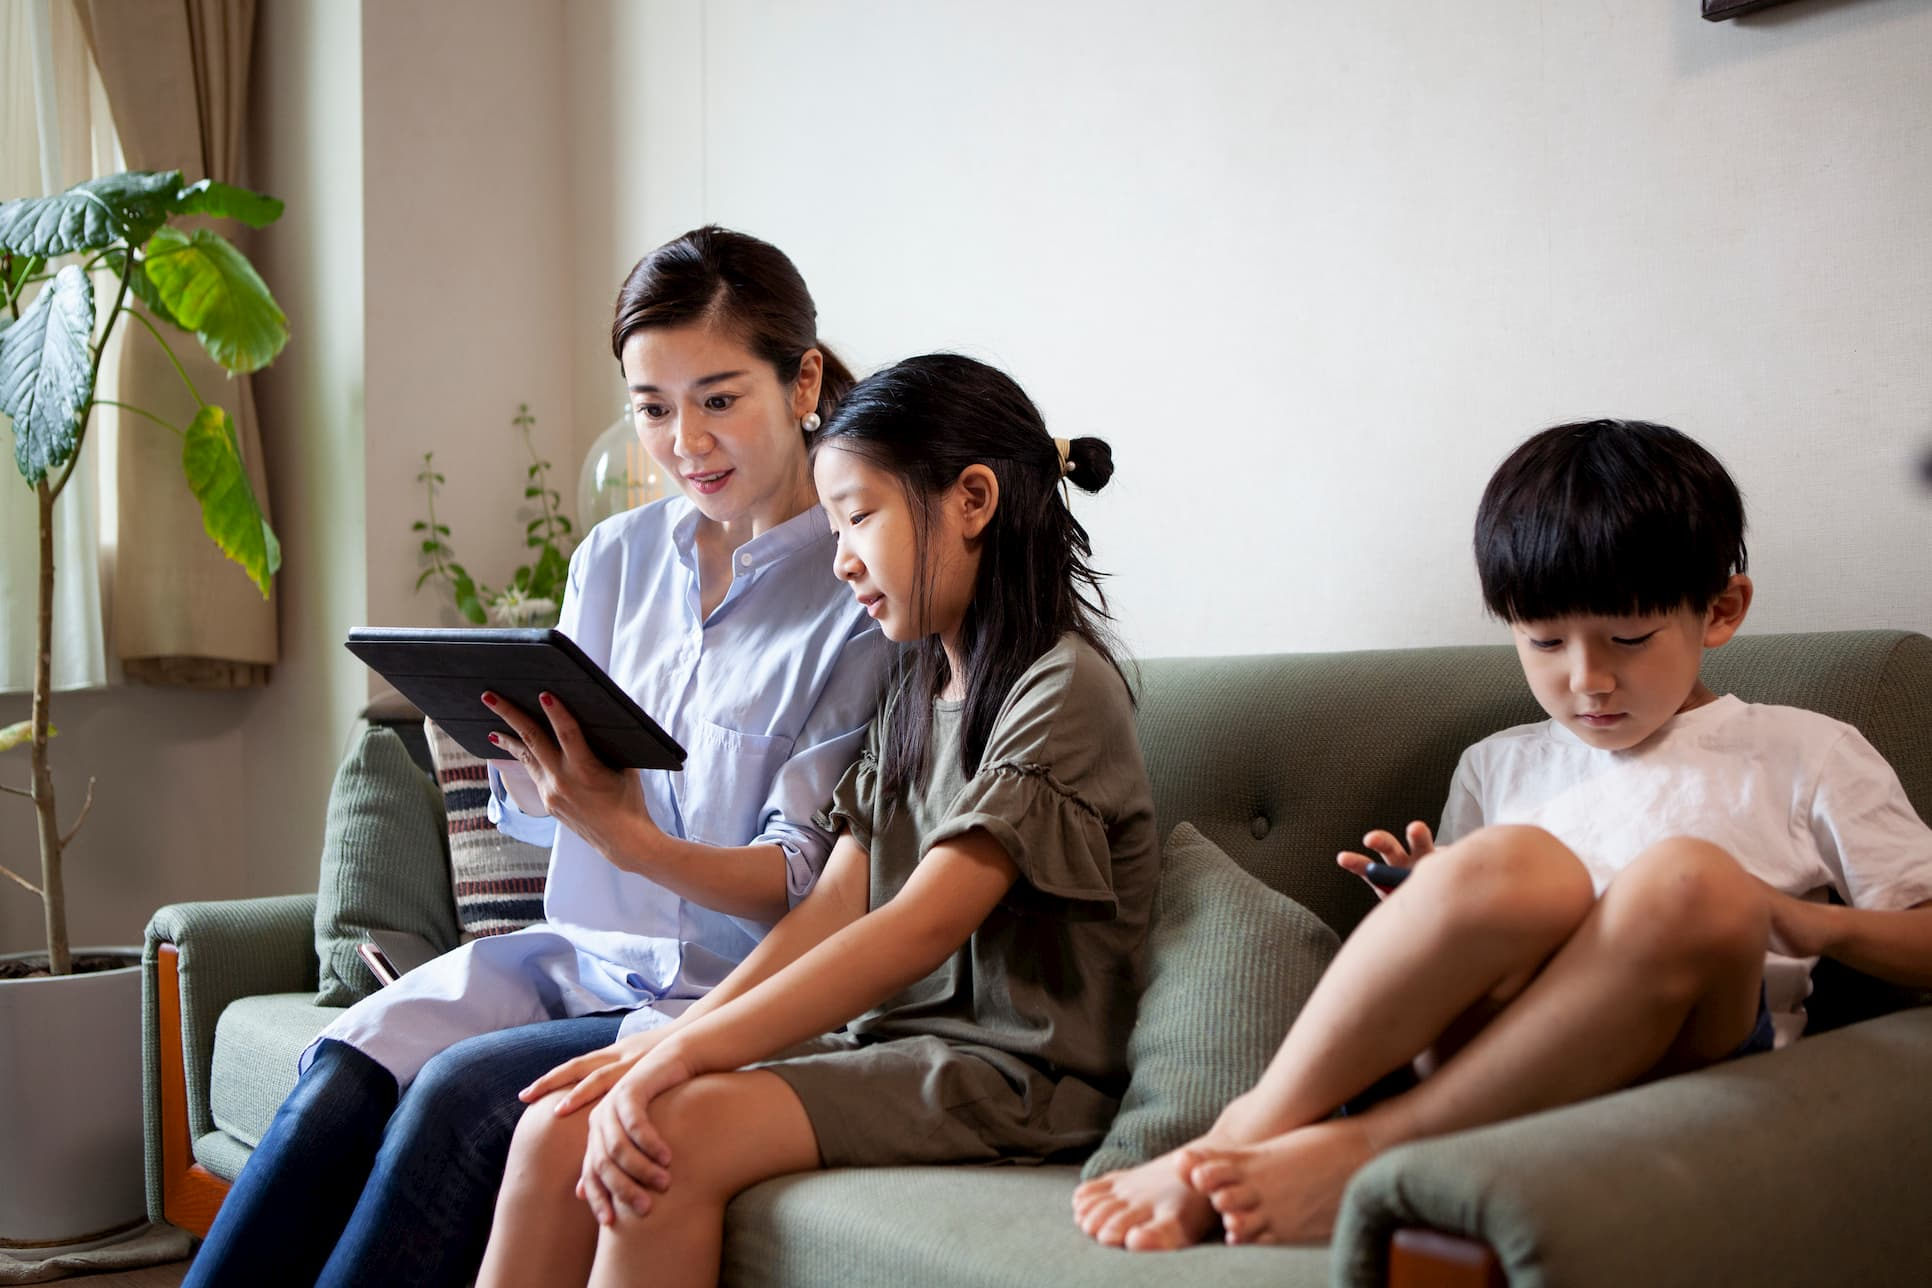 A mom and two kids on their tablets